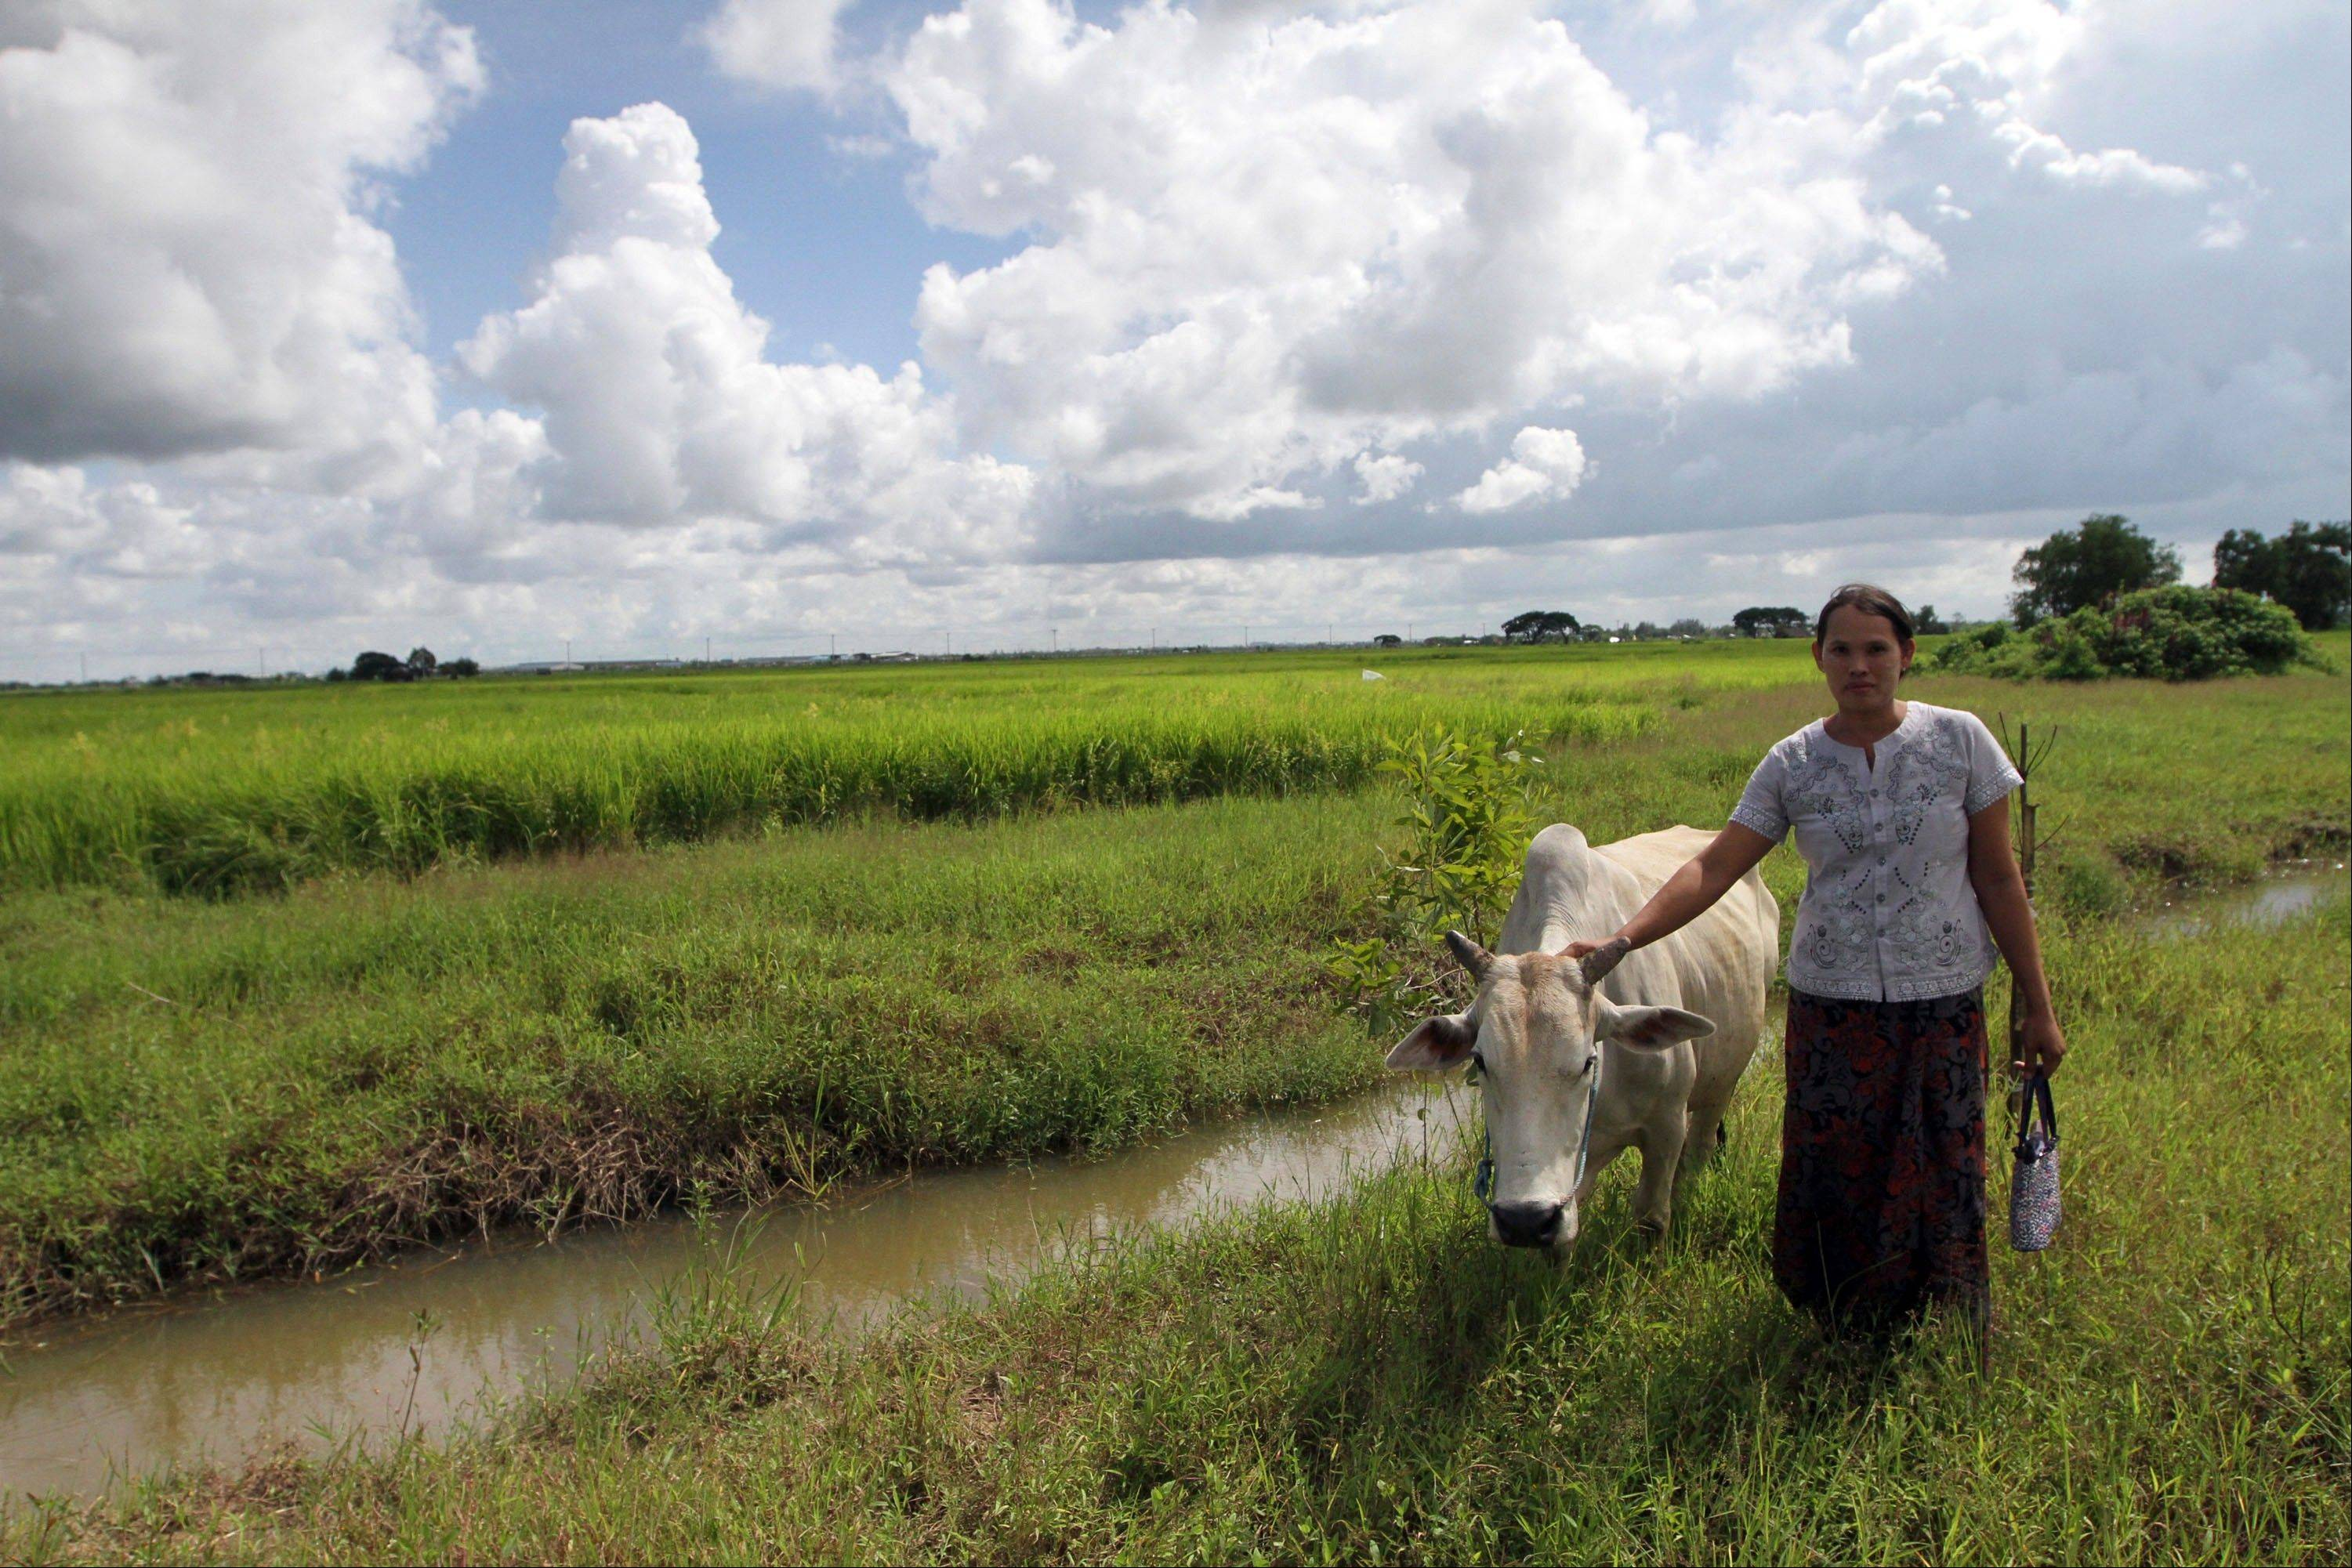 Hnin Nandar stands along with her cow near her farmland at Mingaladon township, northern outskirts of Yangon, Myanmar. The landscape of Mingaladon township tells a story of economic upheaval. Skeletons of factories for a new industrial zone rise from thick green rice paddies local farmers say were seized illegally by the Zaykabar Company, one of Myanmar's most powerful companies. Human rights groups say land battles could intensify because companies tied to the military and business elite are rushing to grab land as the country emerges from five decades of isolation and opens its economy.